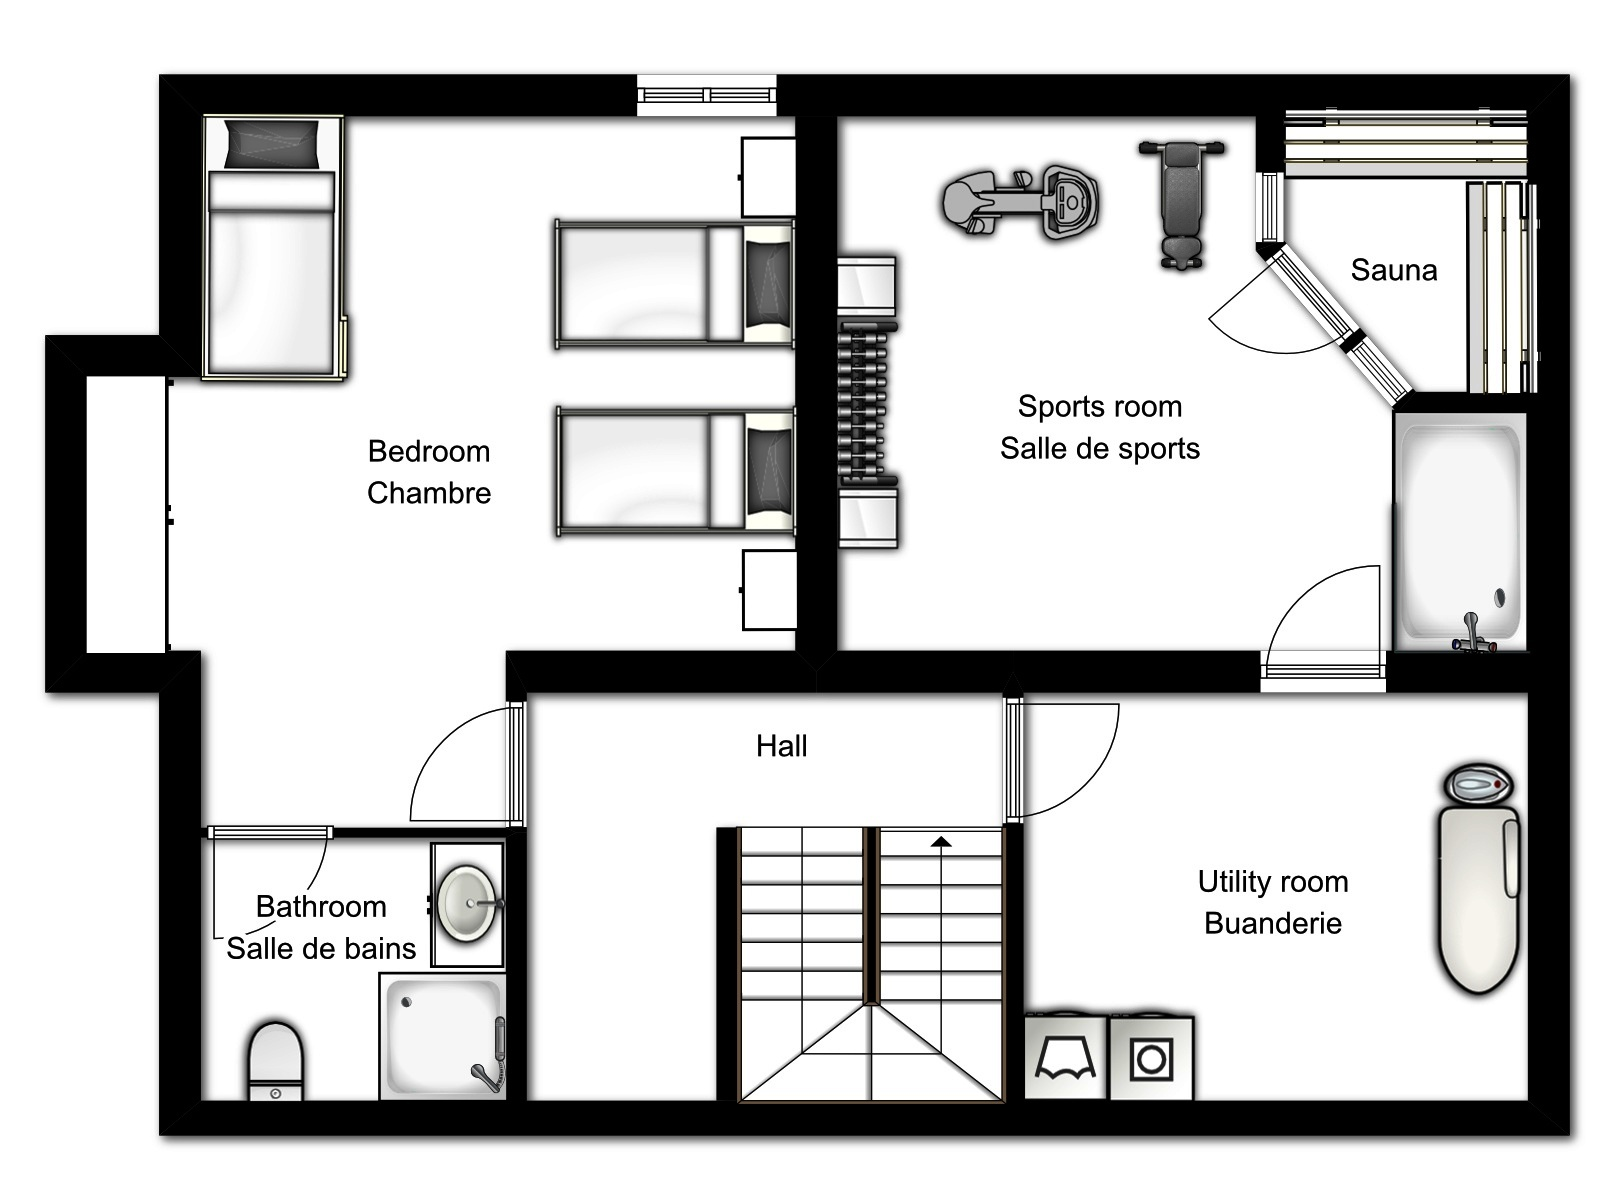 Residential Electric Service Entrance Diagram